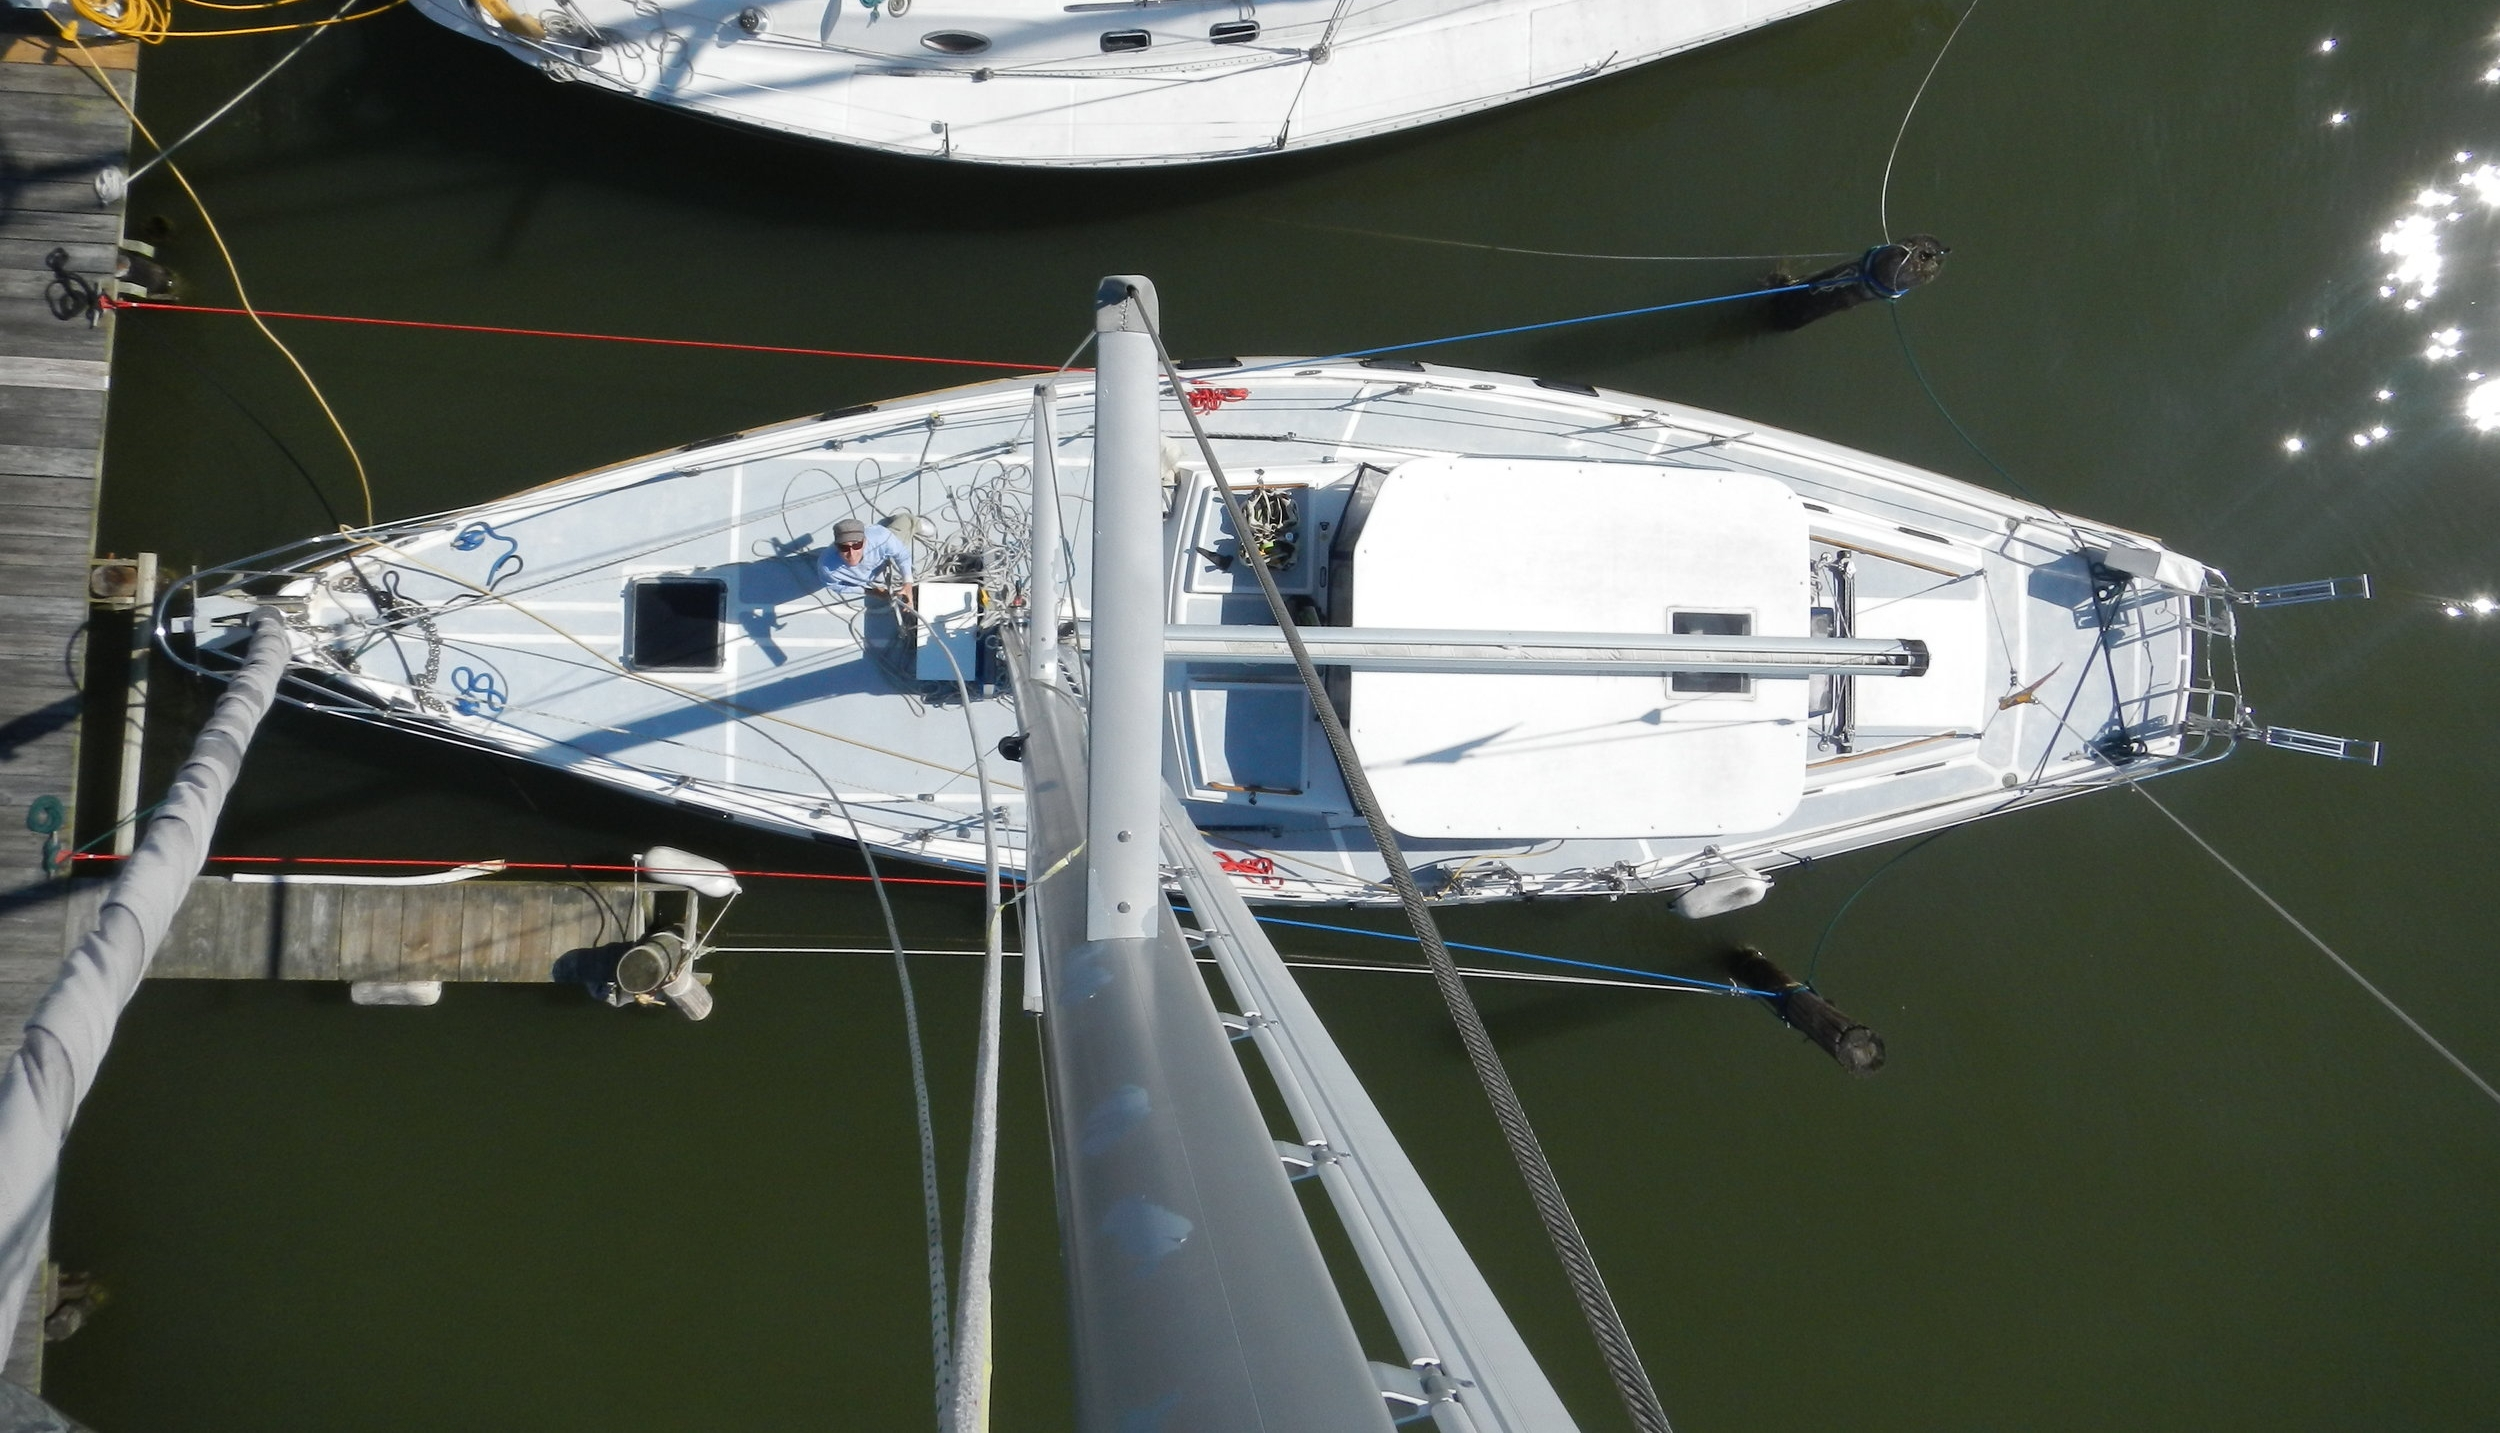 This captain sails with new crew often, so she's color-coded her dock lines to facilitate explaining how they can help.